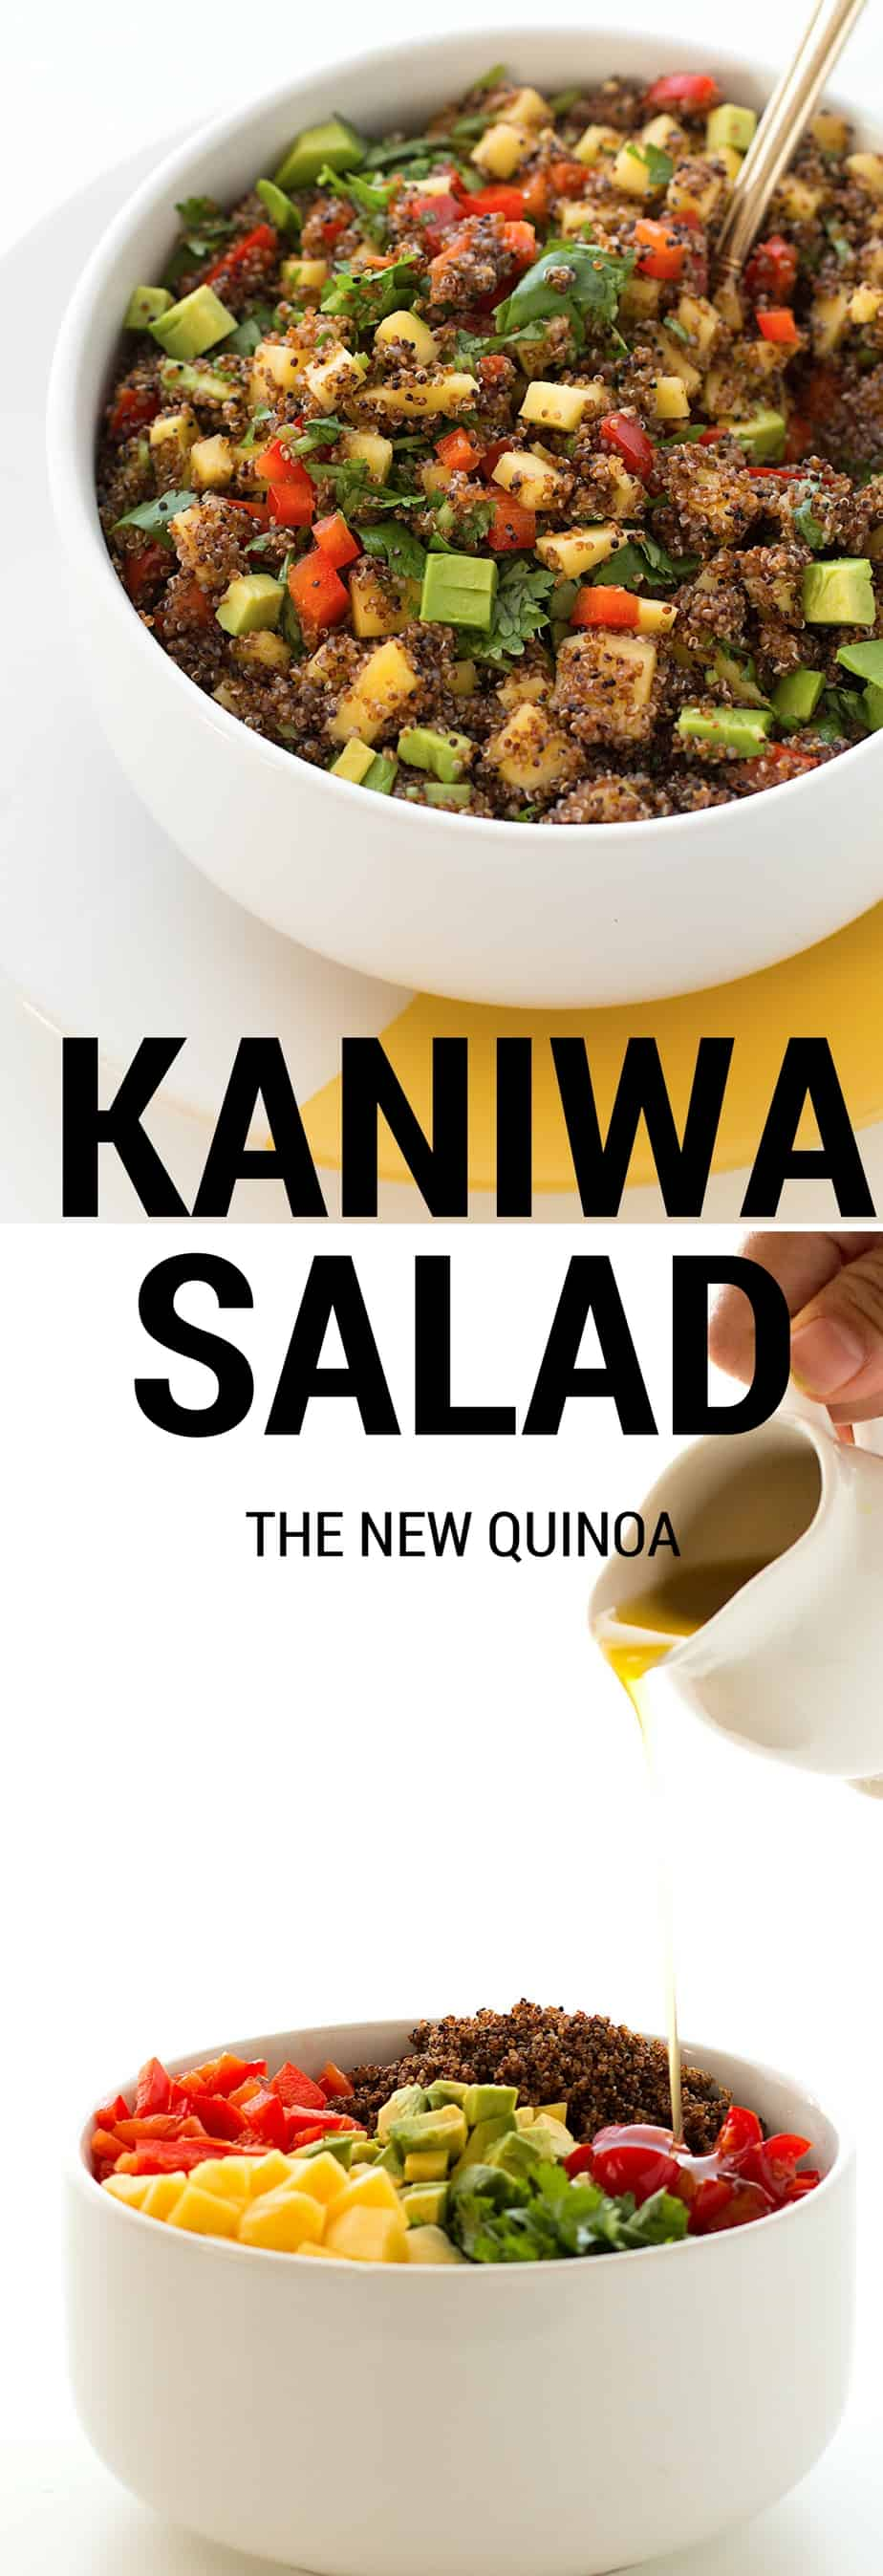 KANIWA SALAD THE NEW QUINOA. I present to you kaniwa, a supergrain related to Quinoa. Both kaniwa and quinoa are good sources of protein, calcium, iron and flavonoids. Quinoa seems to get all of the attention these days but kaniwa are smaller in size which gives them a completely different experience and texture in whatever dish you are preparing, be it a kaniwa salad, a kaniwa breakfast recipe (Kaniwa pancakes are amazing), or a Kaniwa Mexican recipe (like Kaniwa fritadas). These superfood grains are gluten-free and can be consumed by those who suffer from coeliac disease.